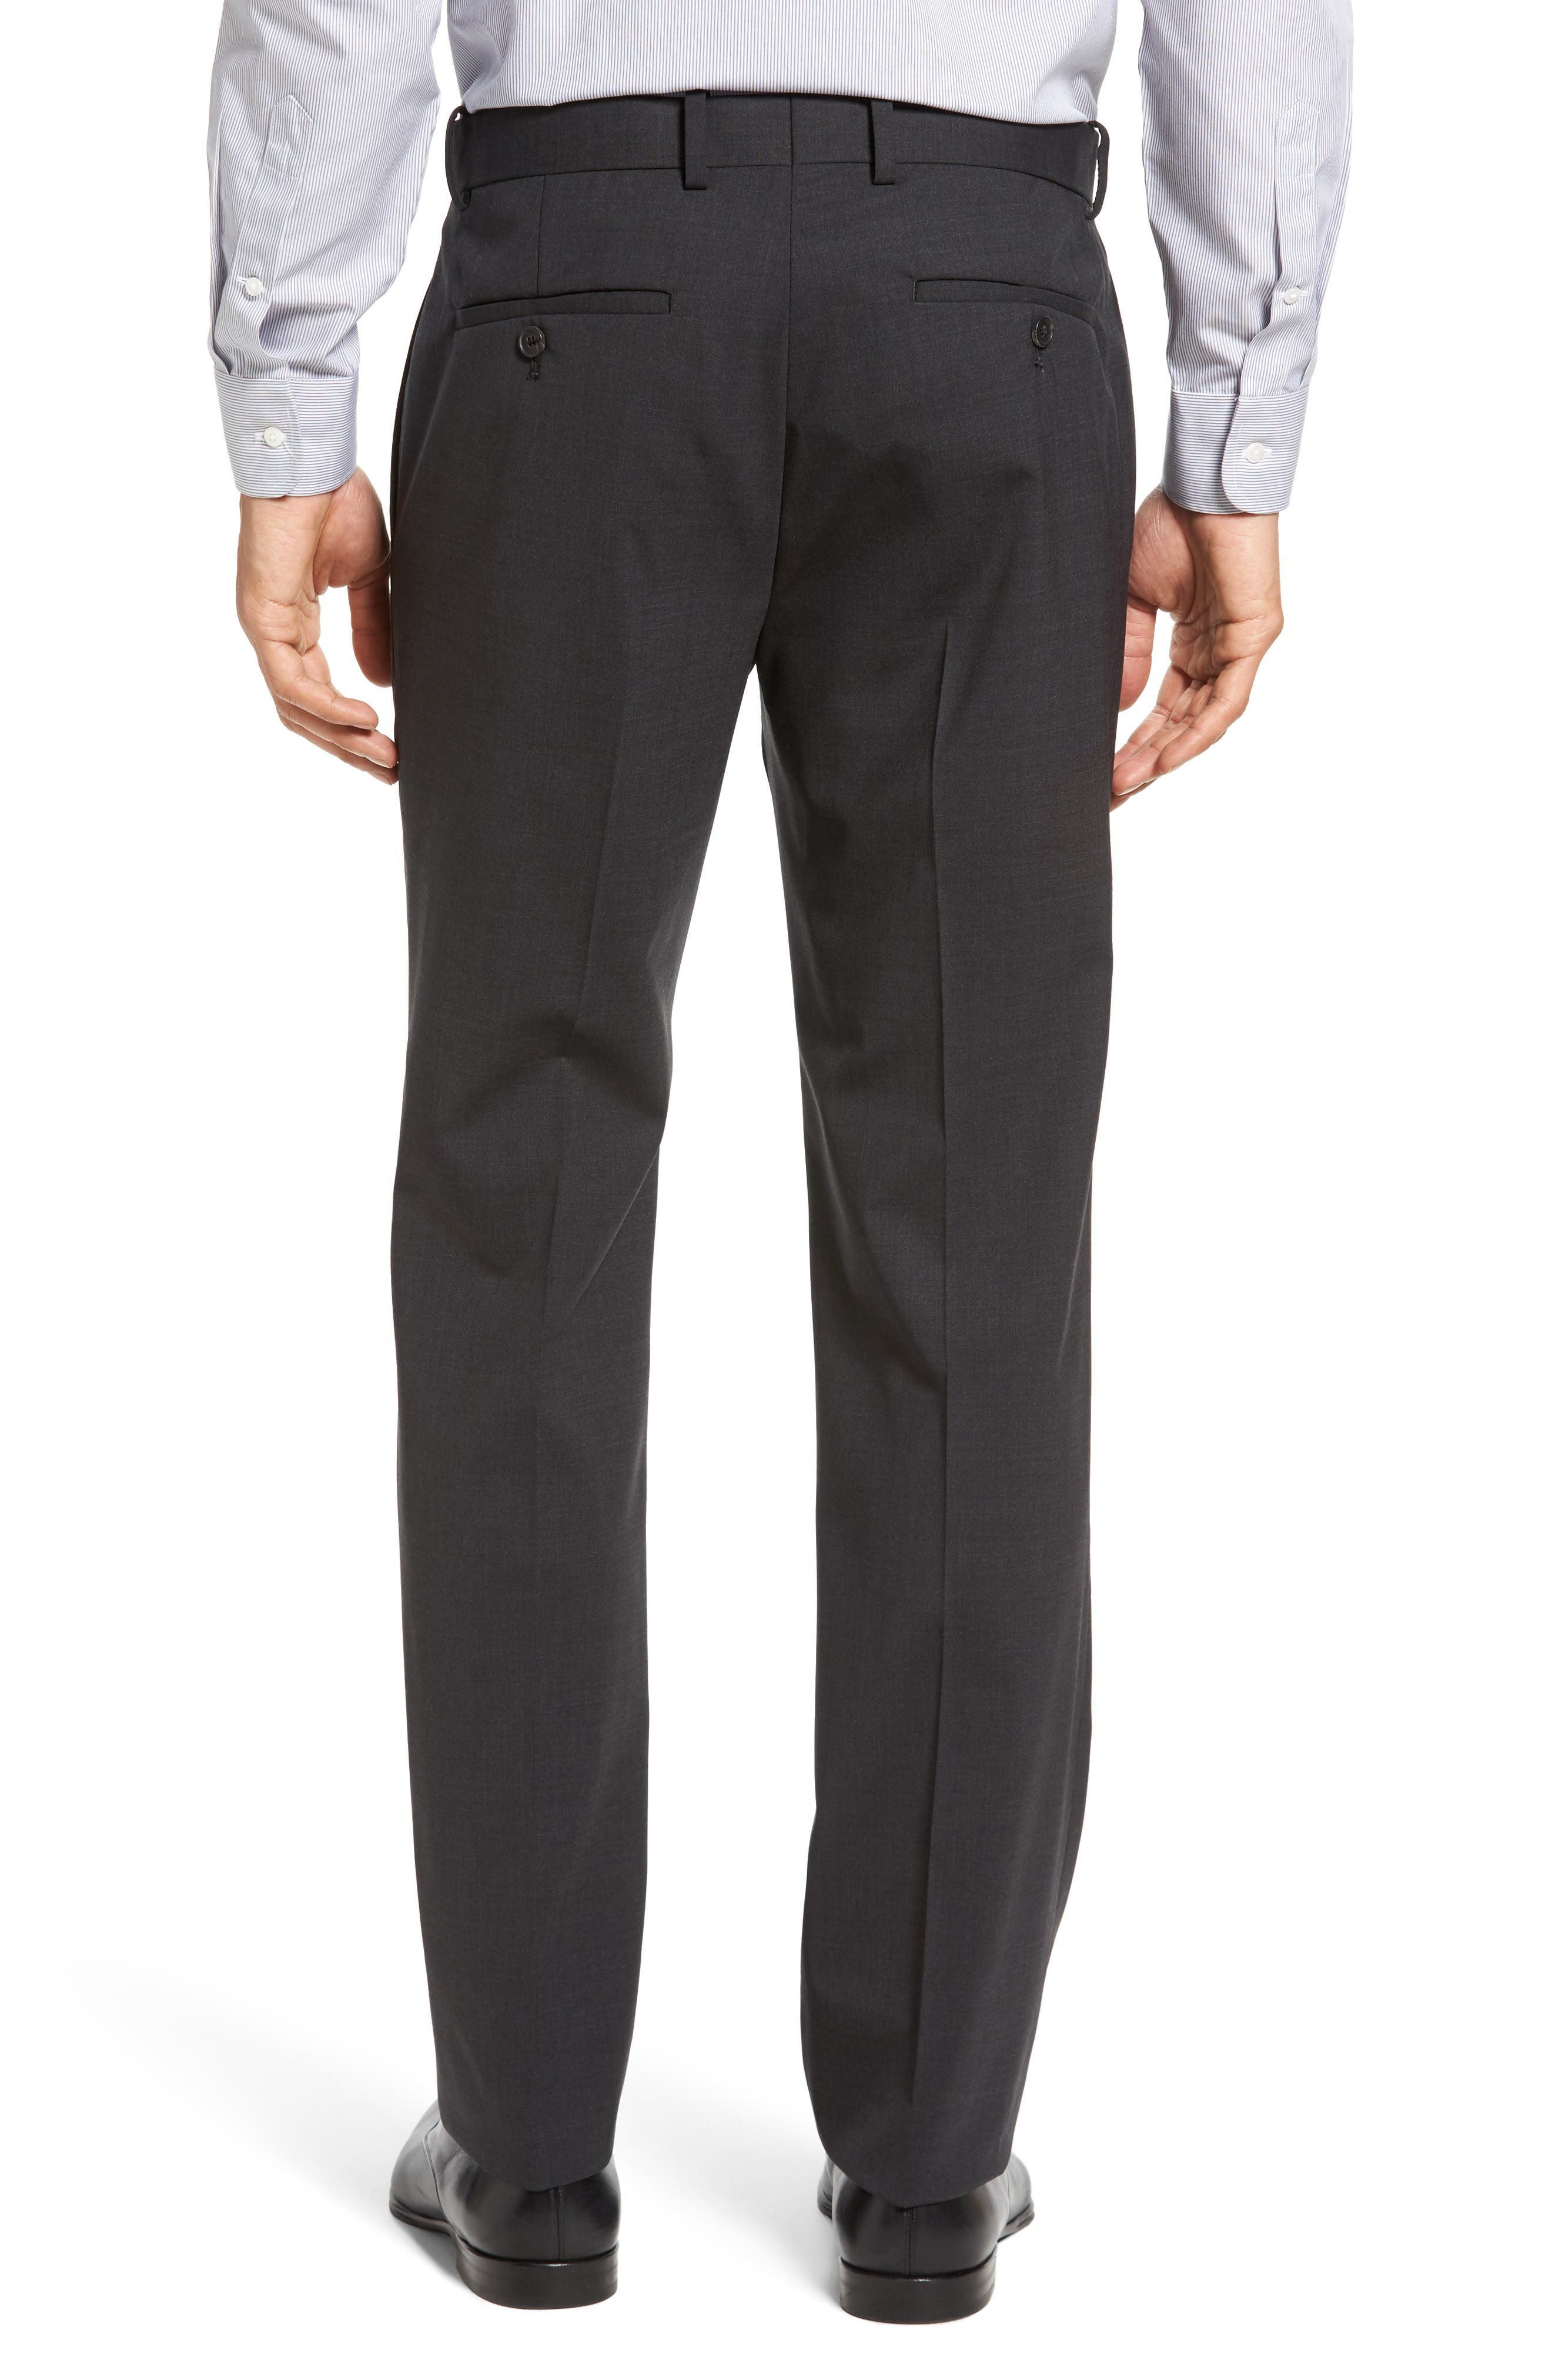 Marlo New Tailor 2 Flat Front Solid Stretch Wool Trousers,                             Alternate thumbnail 3, color,                             029